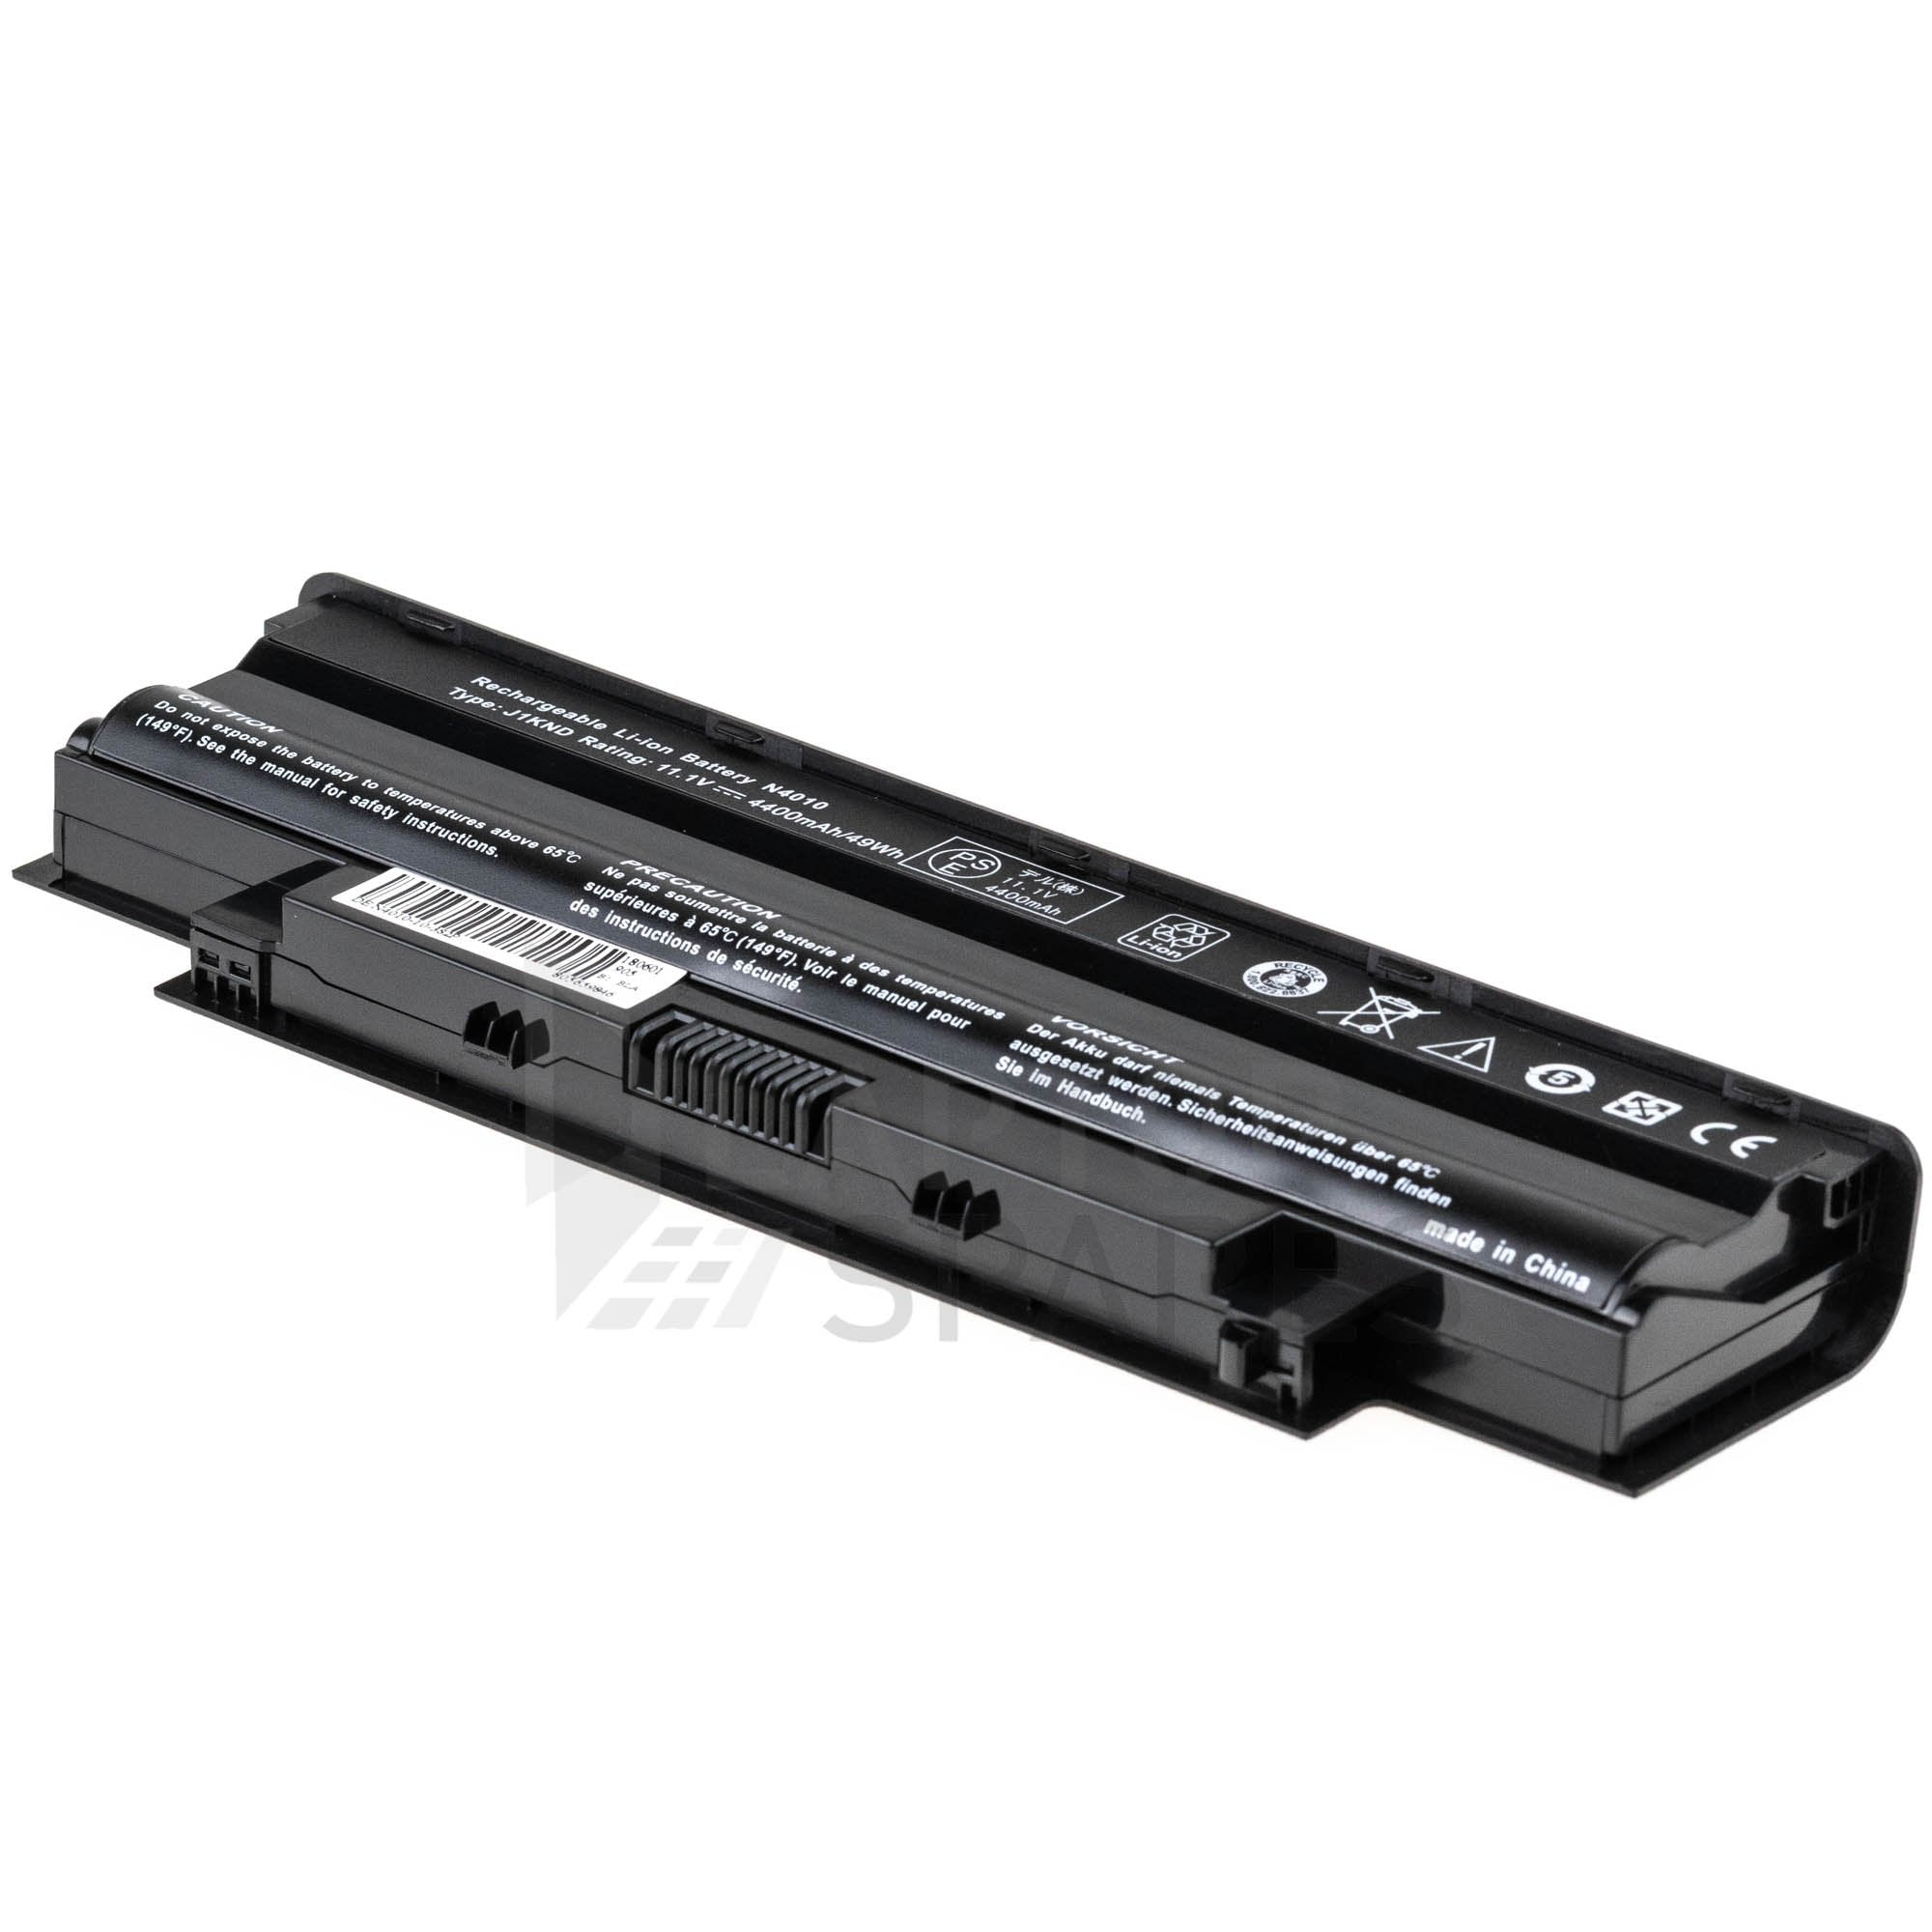 Dell Inspiron 17R N7010 4400mAh 6 Cell Battery